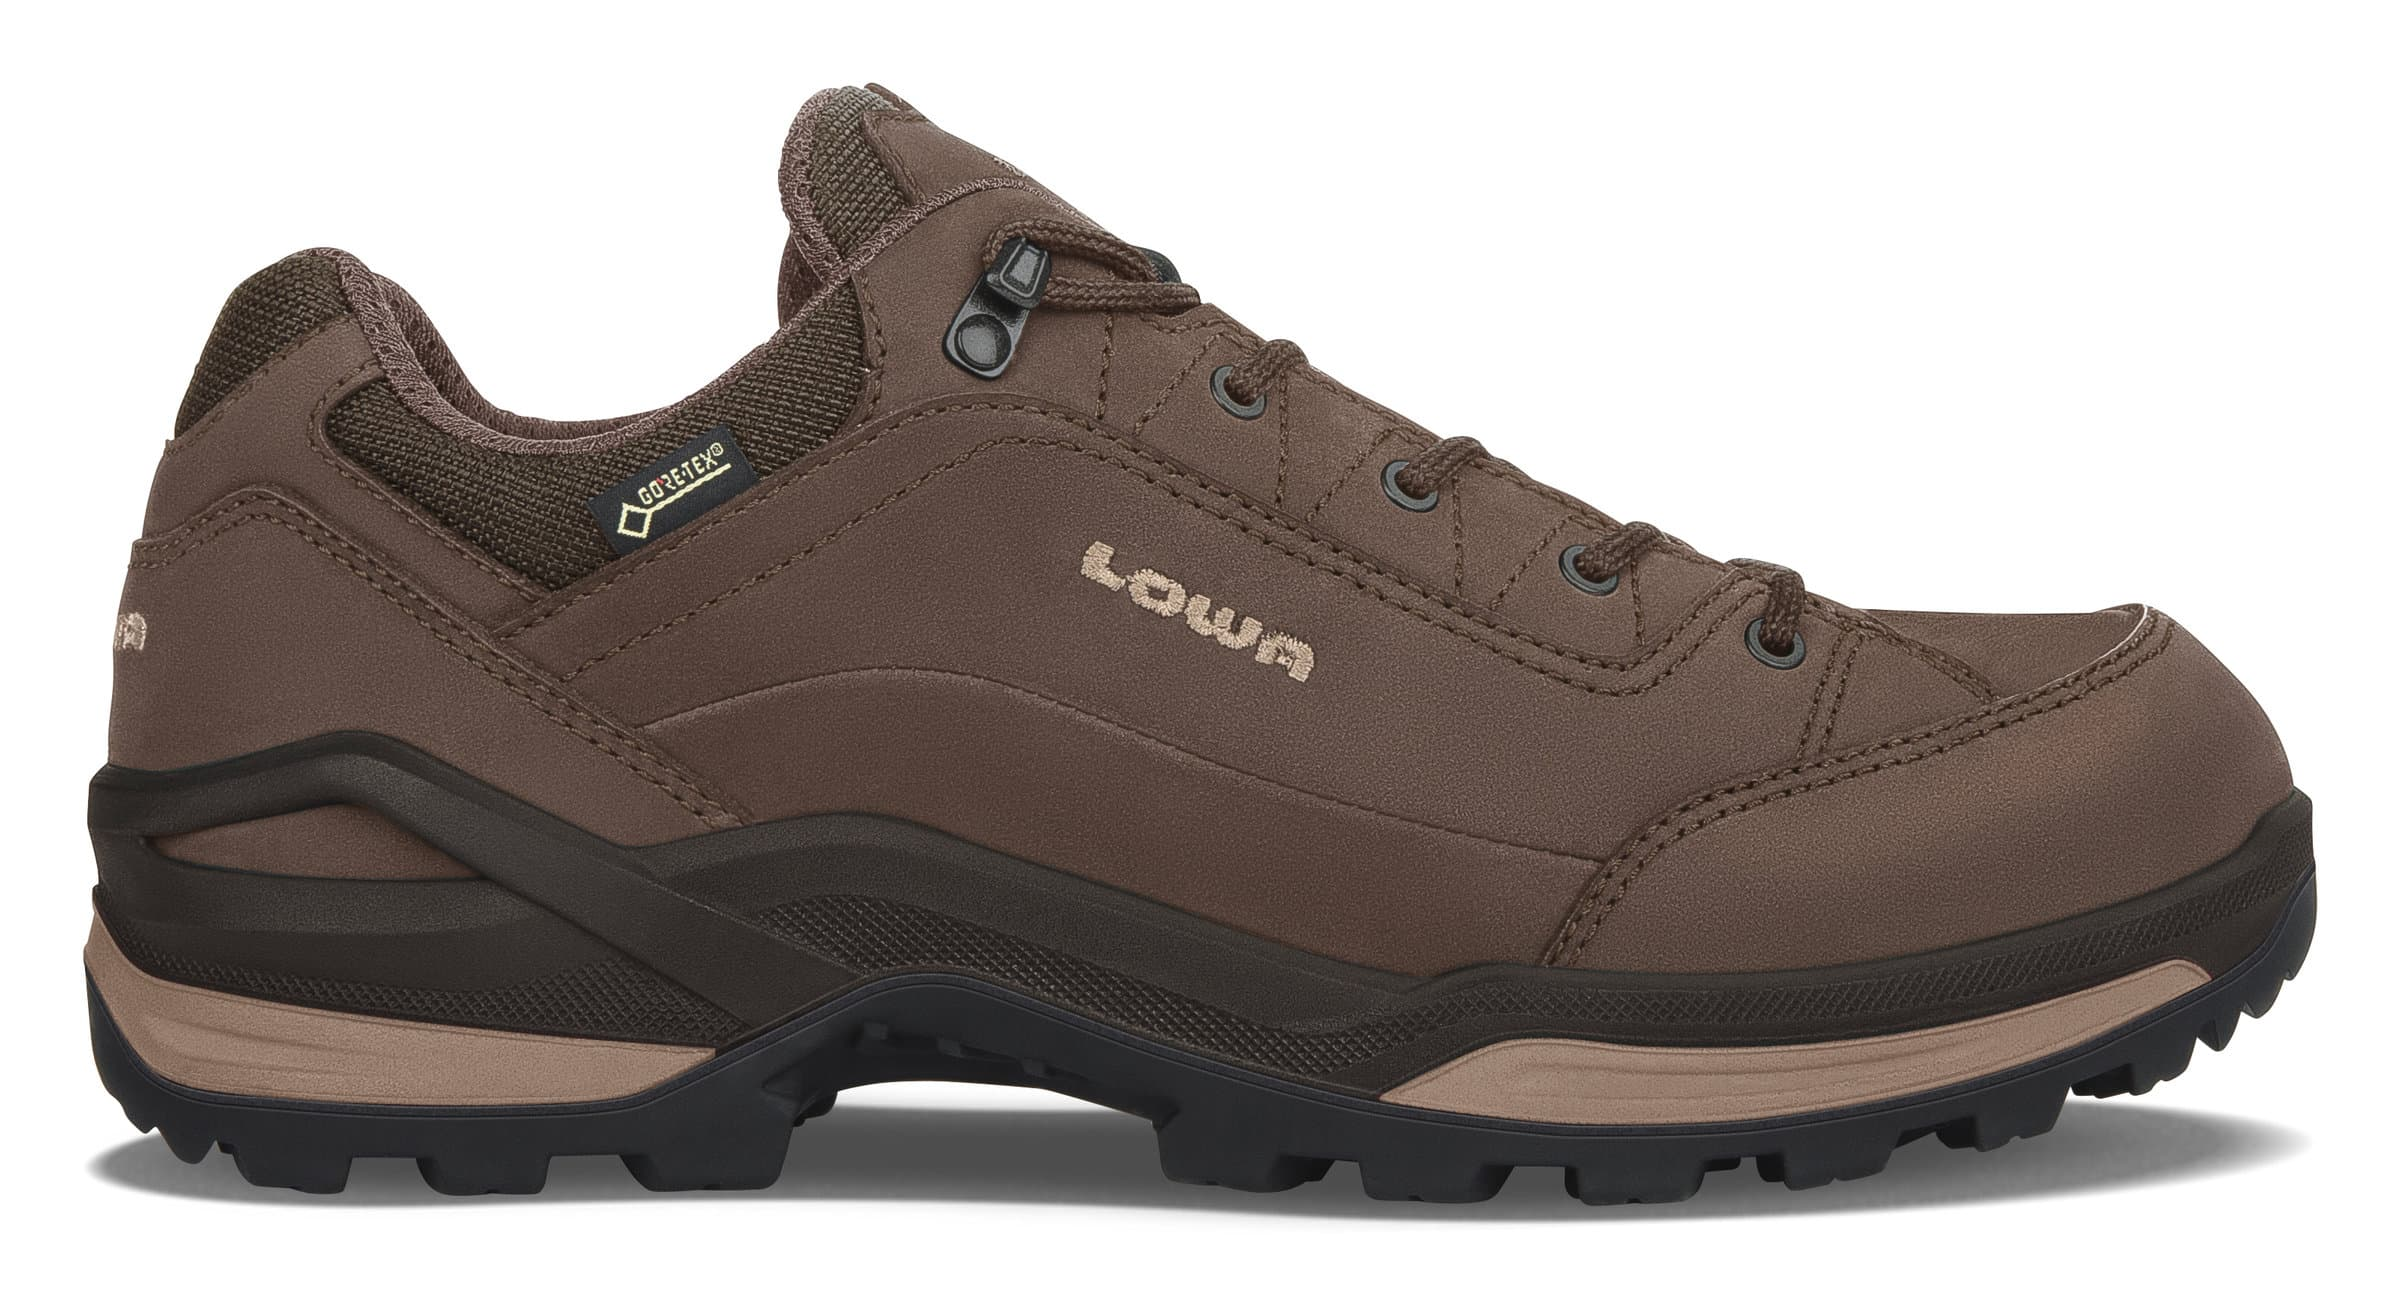 Lowa Renegade GTX Lo Chaussures polyvalentes pour homme